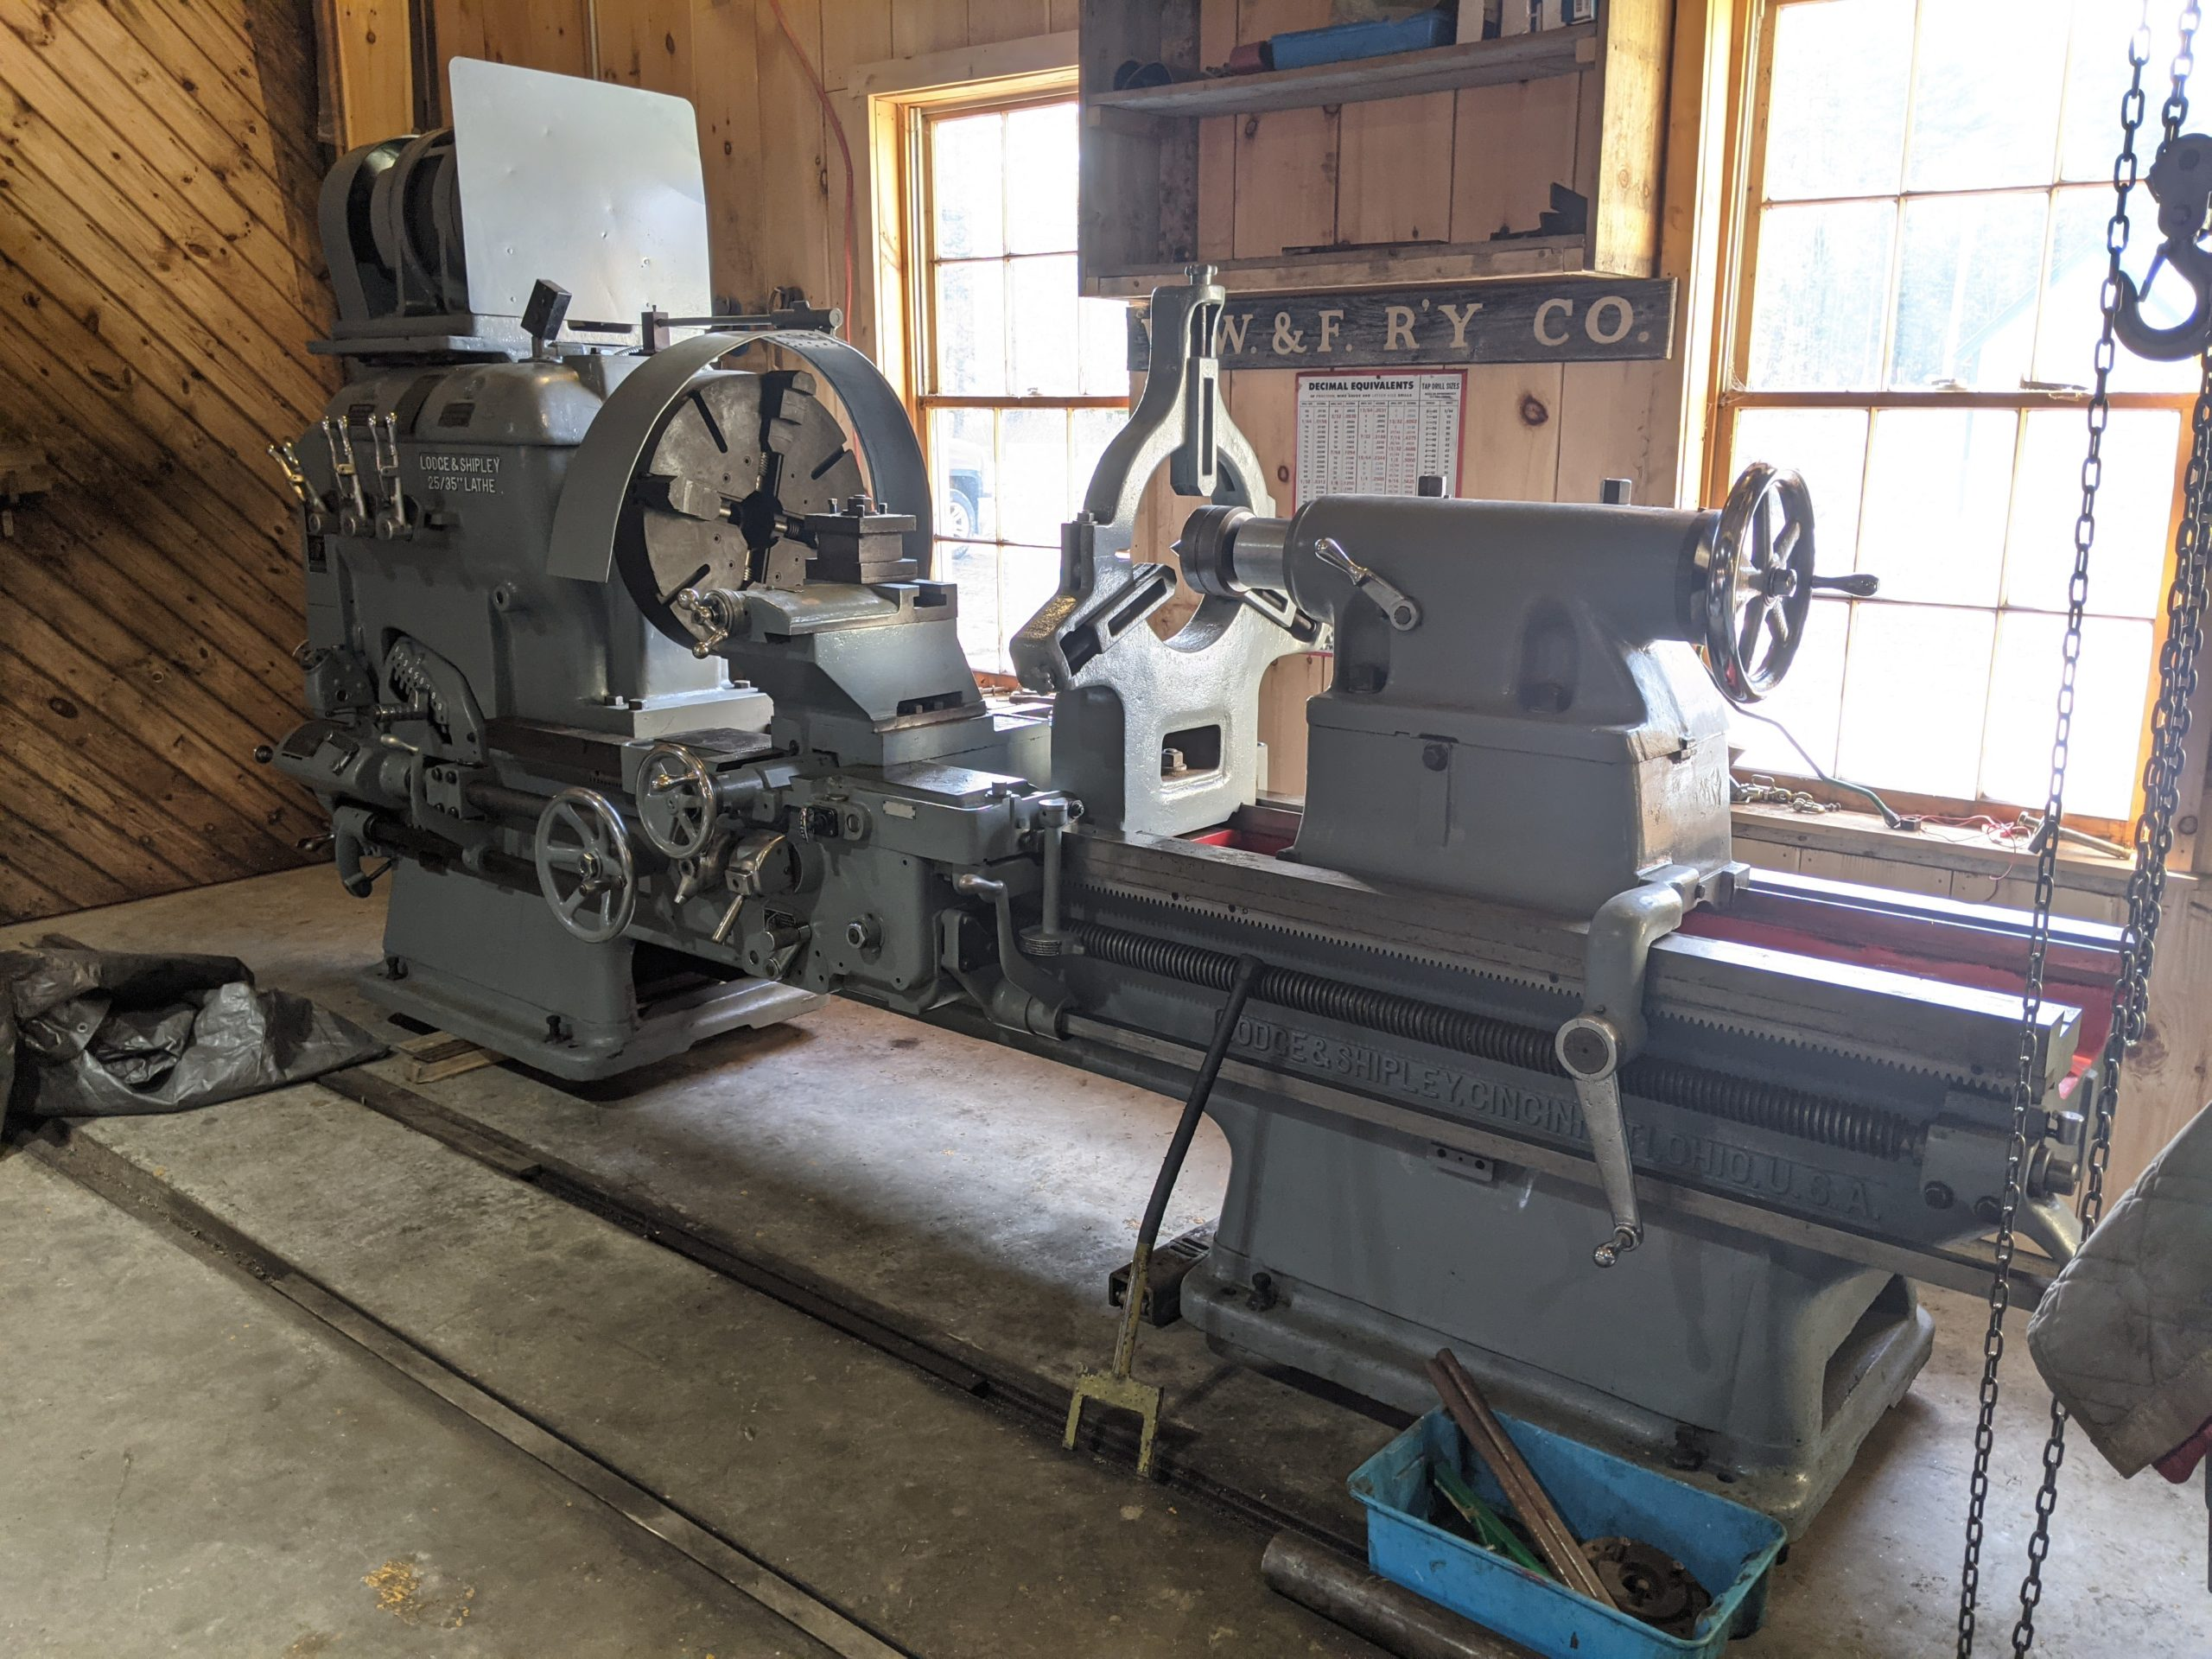 Lodge and Shipley lathe